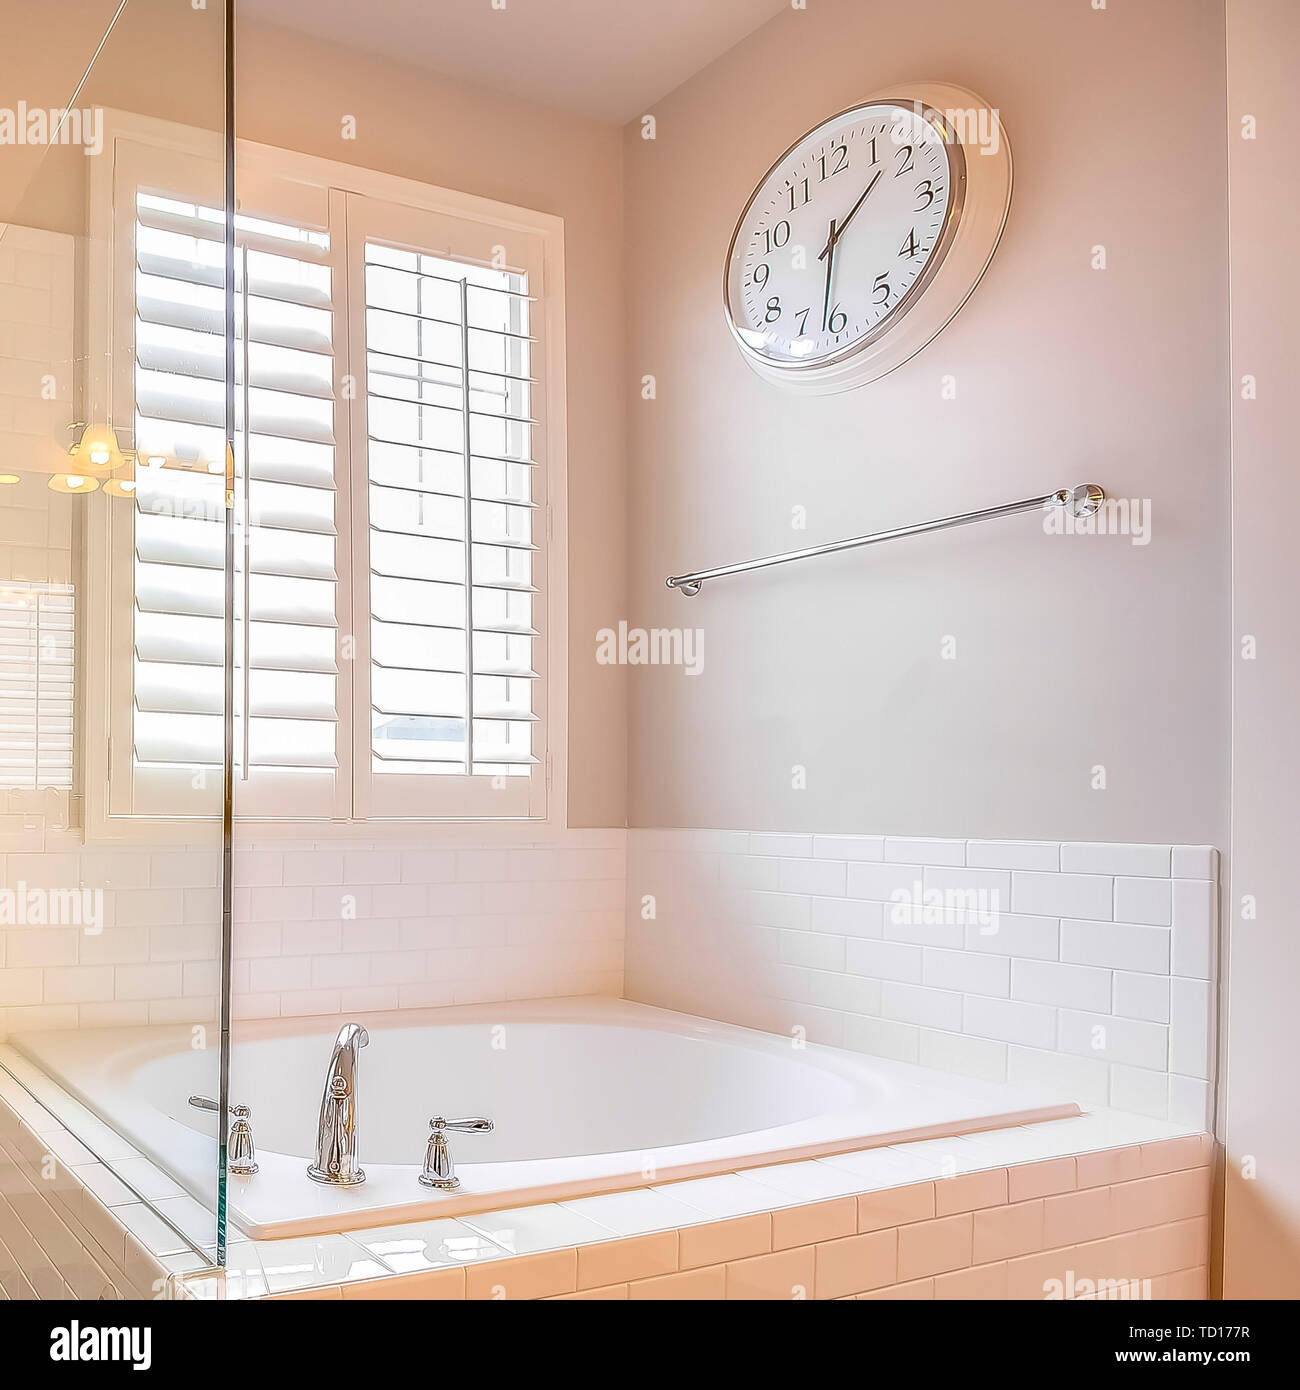 Square Frame Built In Bathtub And Shower Stall With Glass